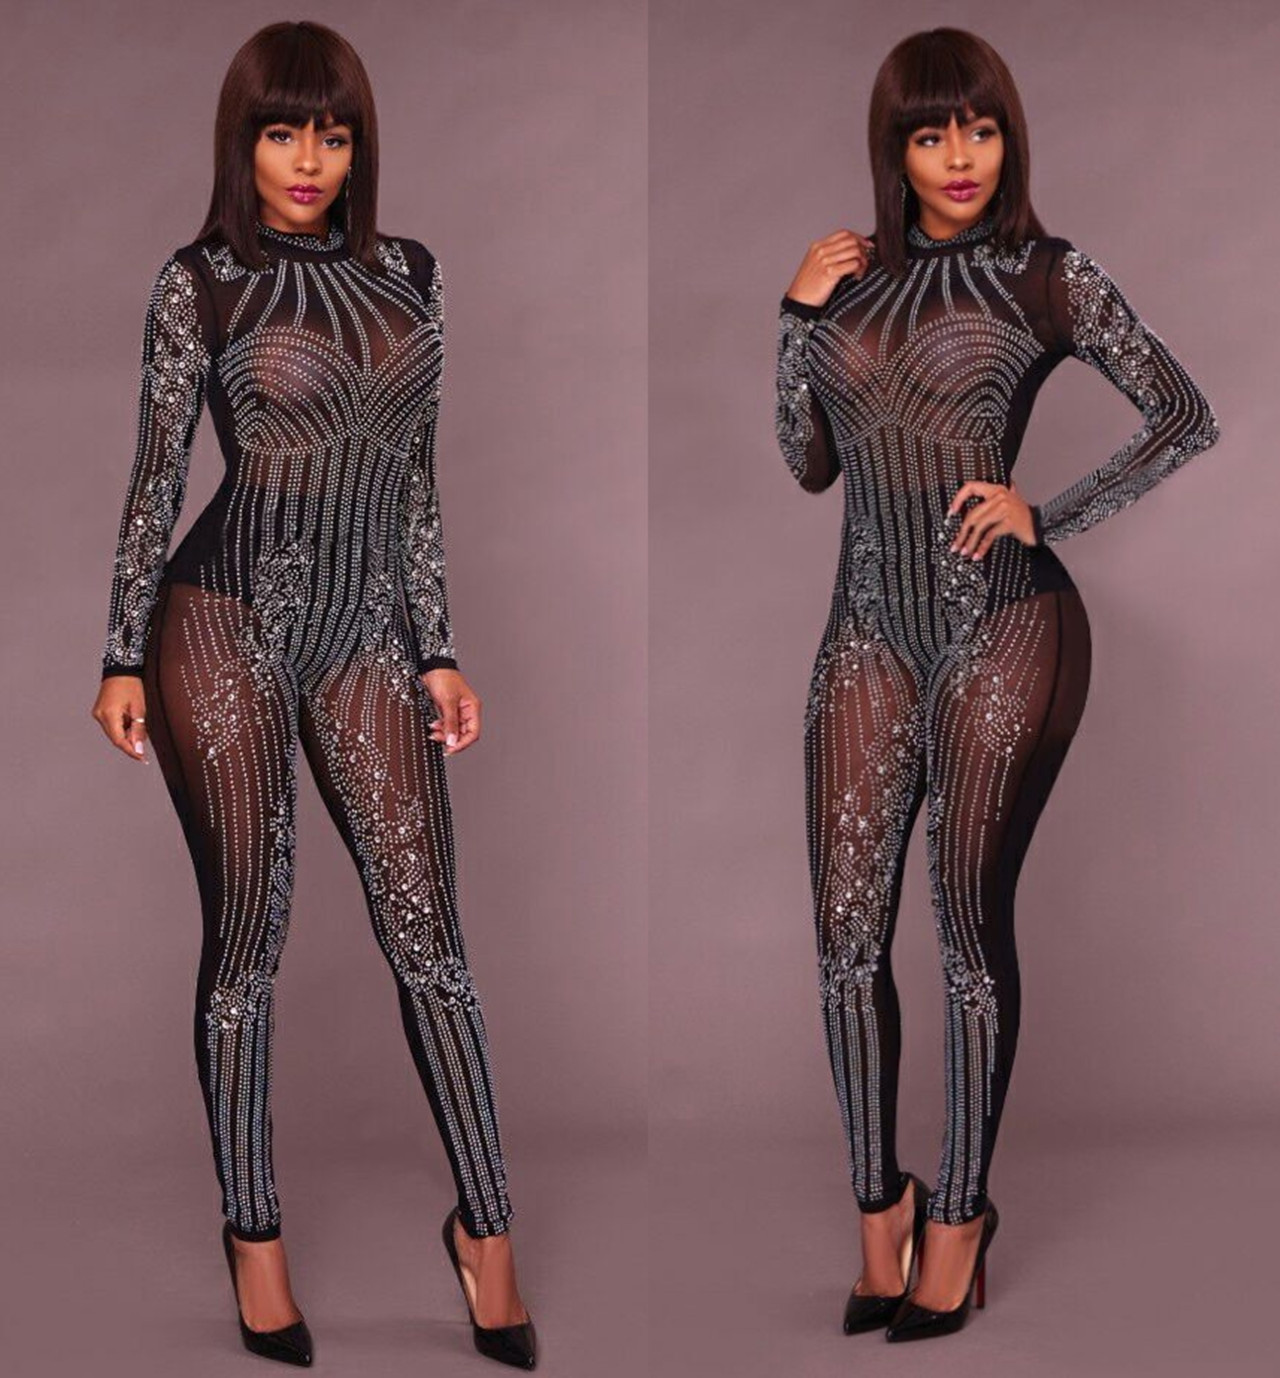 Body Limited Skinny Solid Broadcloth Catsuit 2018 Special Offer Polyester Plus Size Jumpsuits And Rompers For Women Jumpsuit